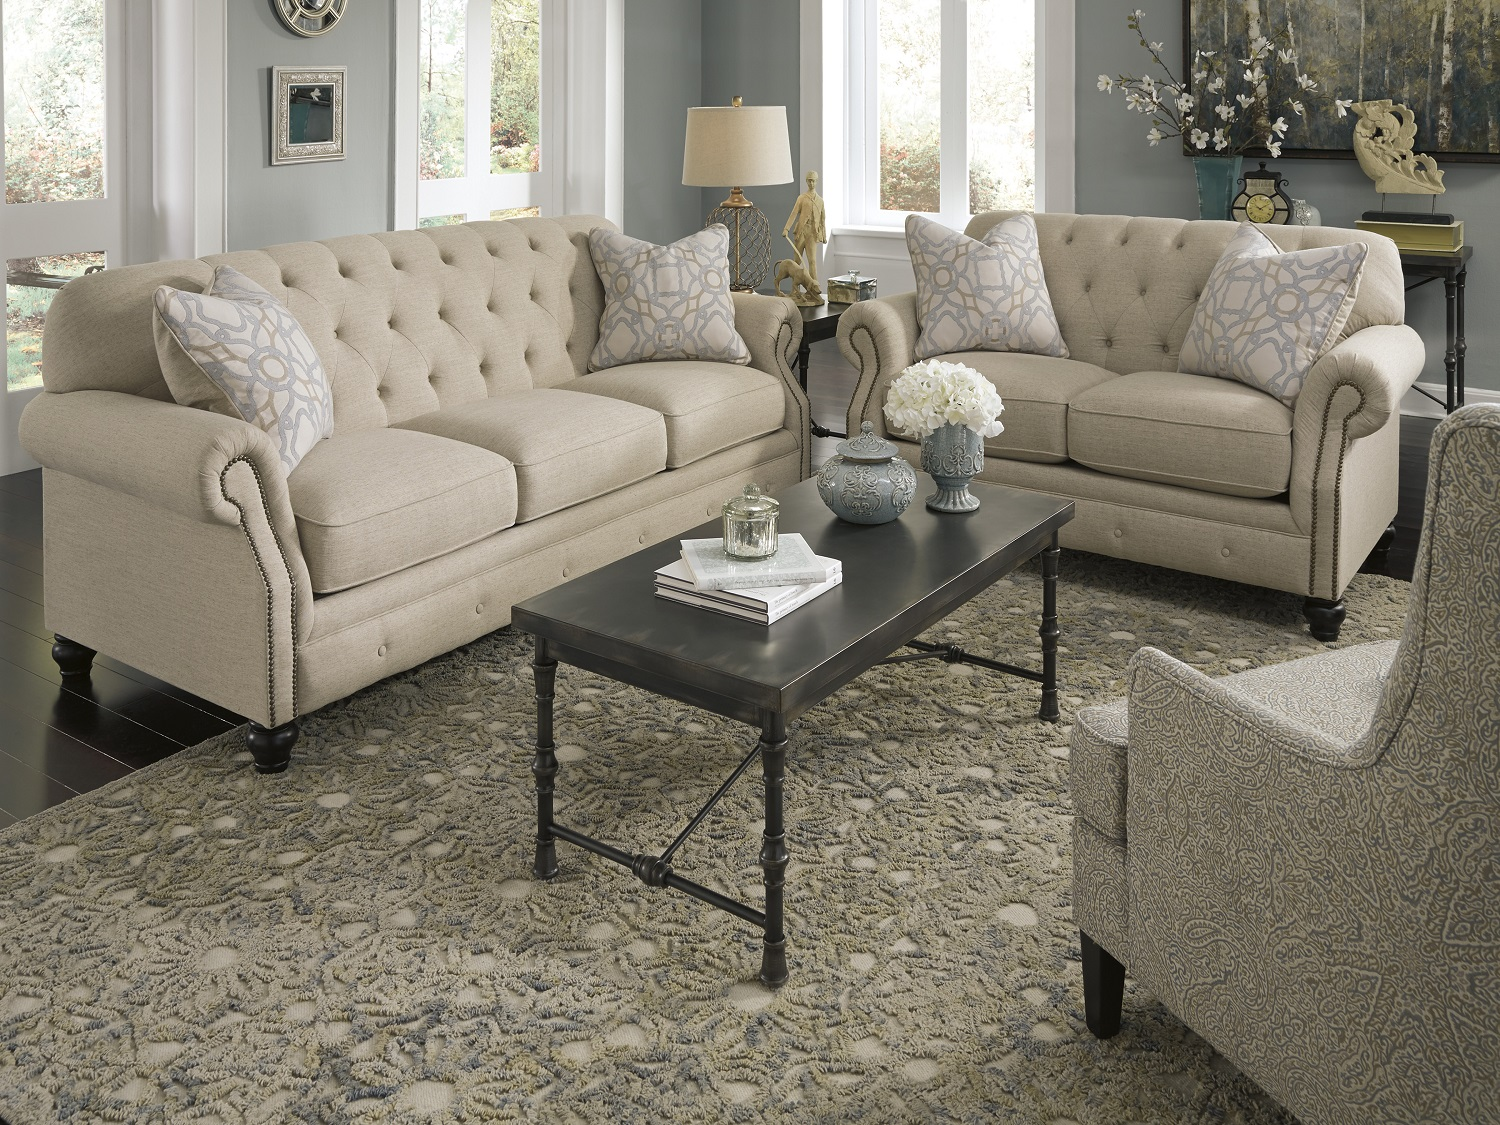 Kieran Sofa Only, 440001, Sofa Sets by Midha Furniture to Brampton, Mississauga, Etobicoke, Toronto, Scraborough, Caledon, Oakville, Markham, Ajax, Pickering, Oshawa, Richmondhill, Kitchener, Hamilton and GTA area